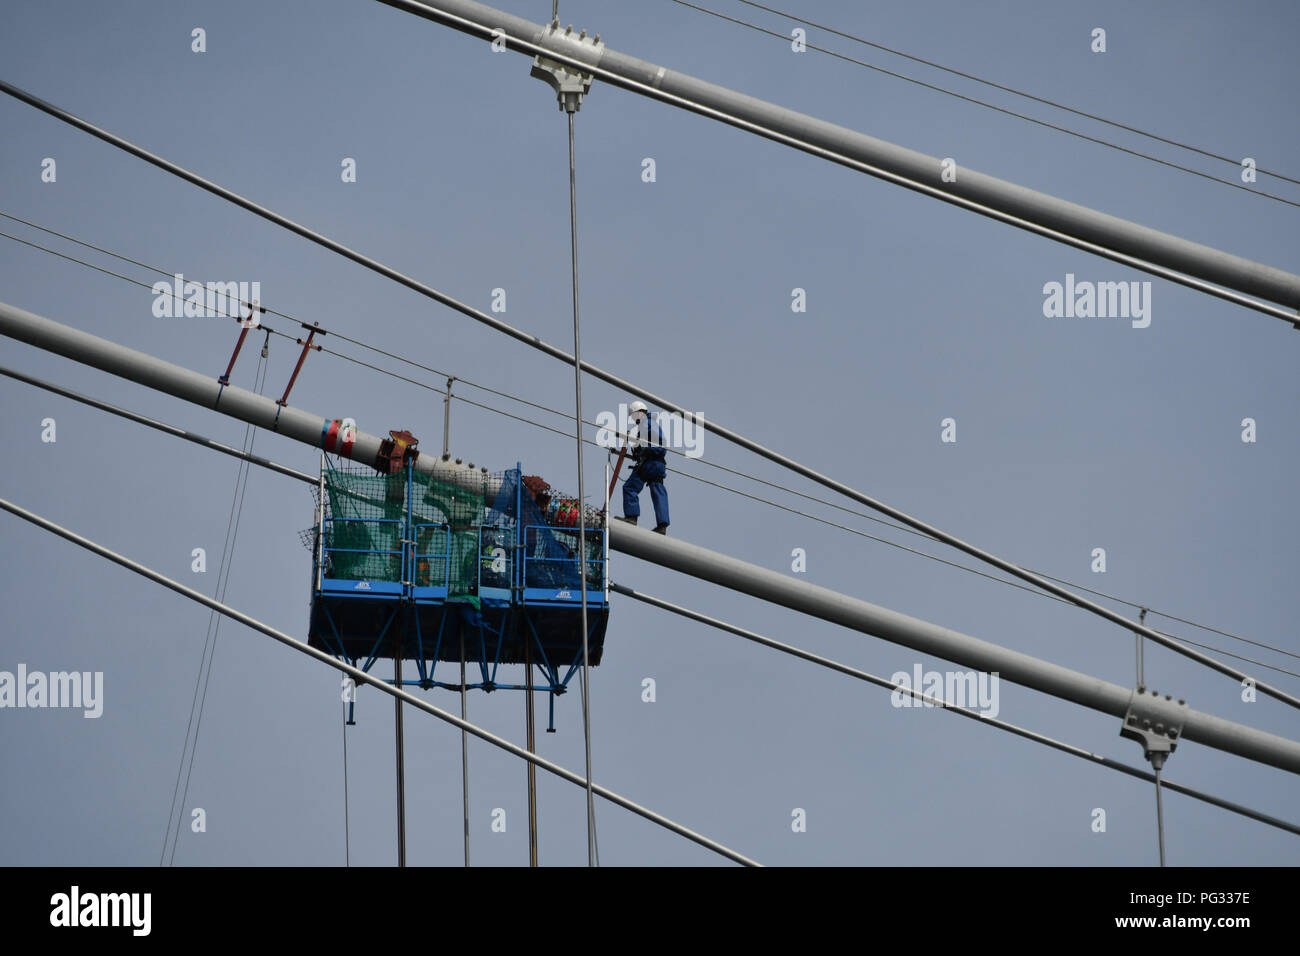 Saltash, Cornwall, UK. 23rd Aug, 2018. UK Weather. Sunny luchtime at Saltash. Seen here working carrying out maintenance on the Brunel bridge that links Cornwall to Devon across the Tamar. Credit: Simon Maycock/Alamy Live News Stock Photo